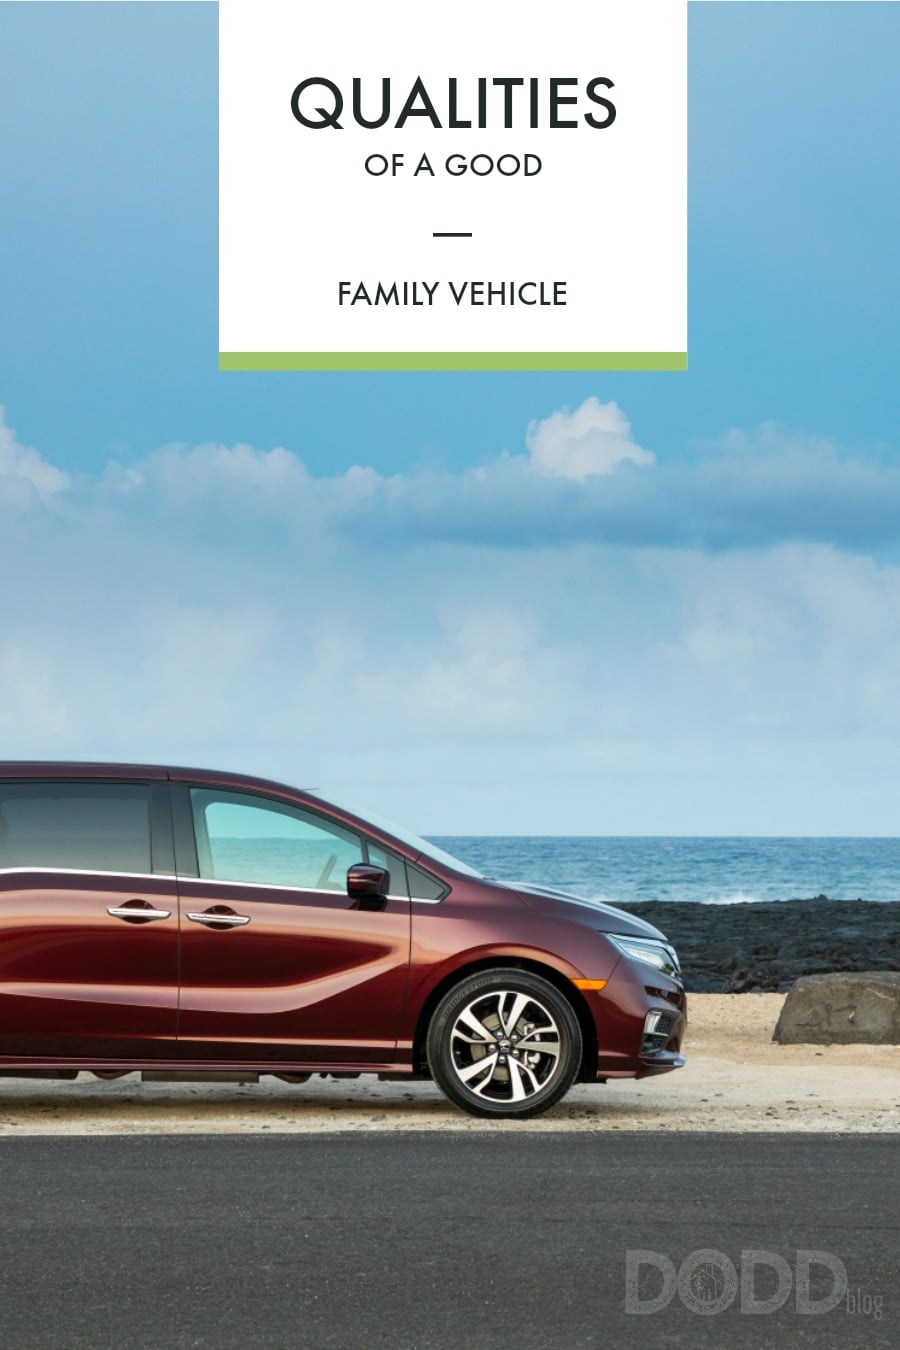 Qualities Of A Good Family Vehicle Vehicle for family